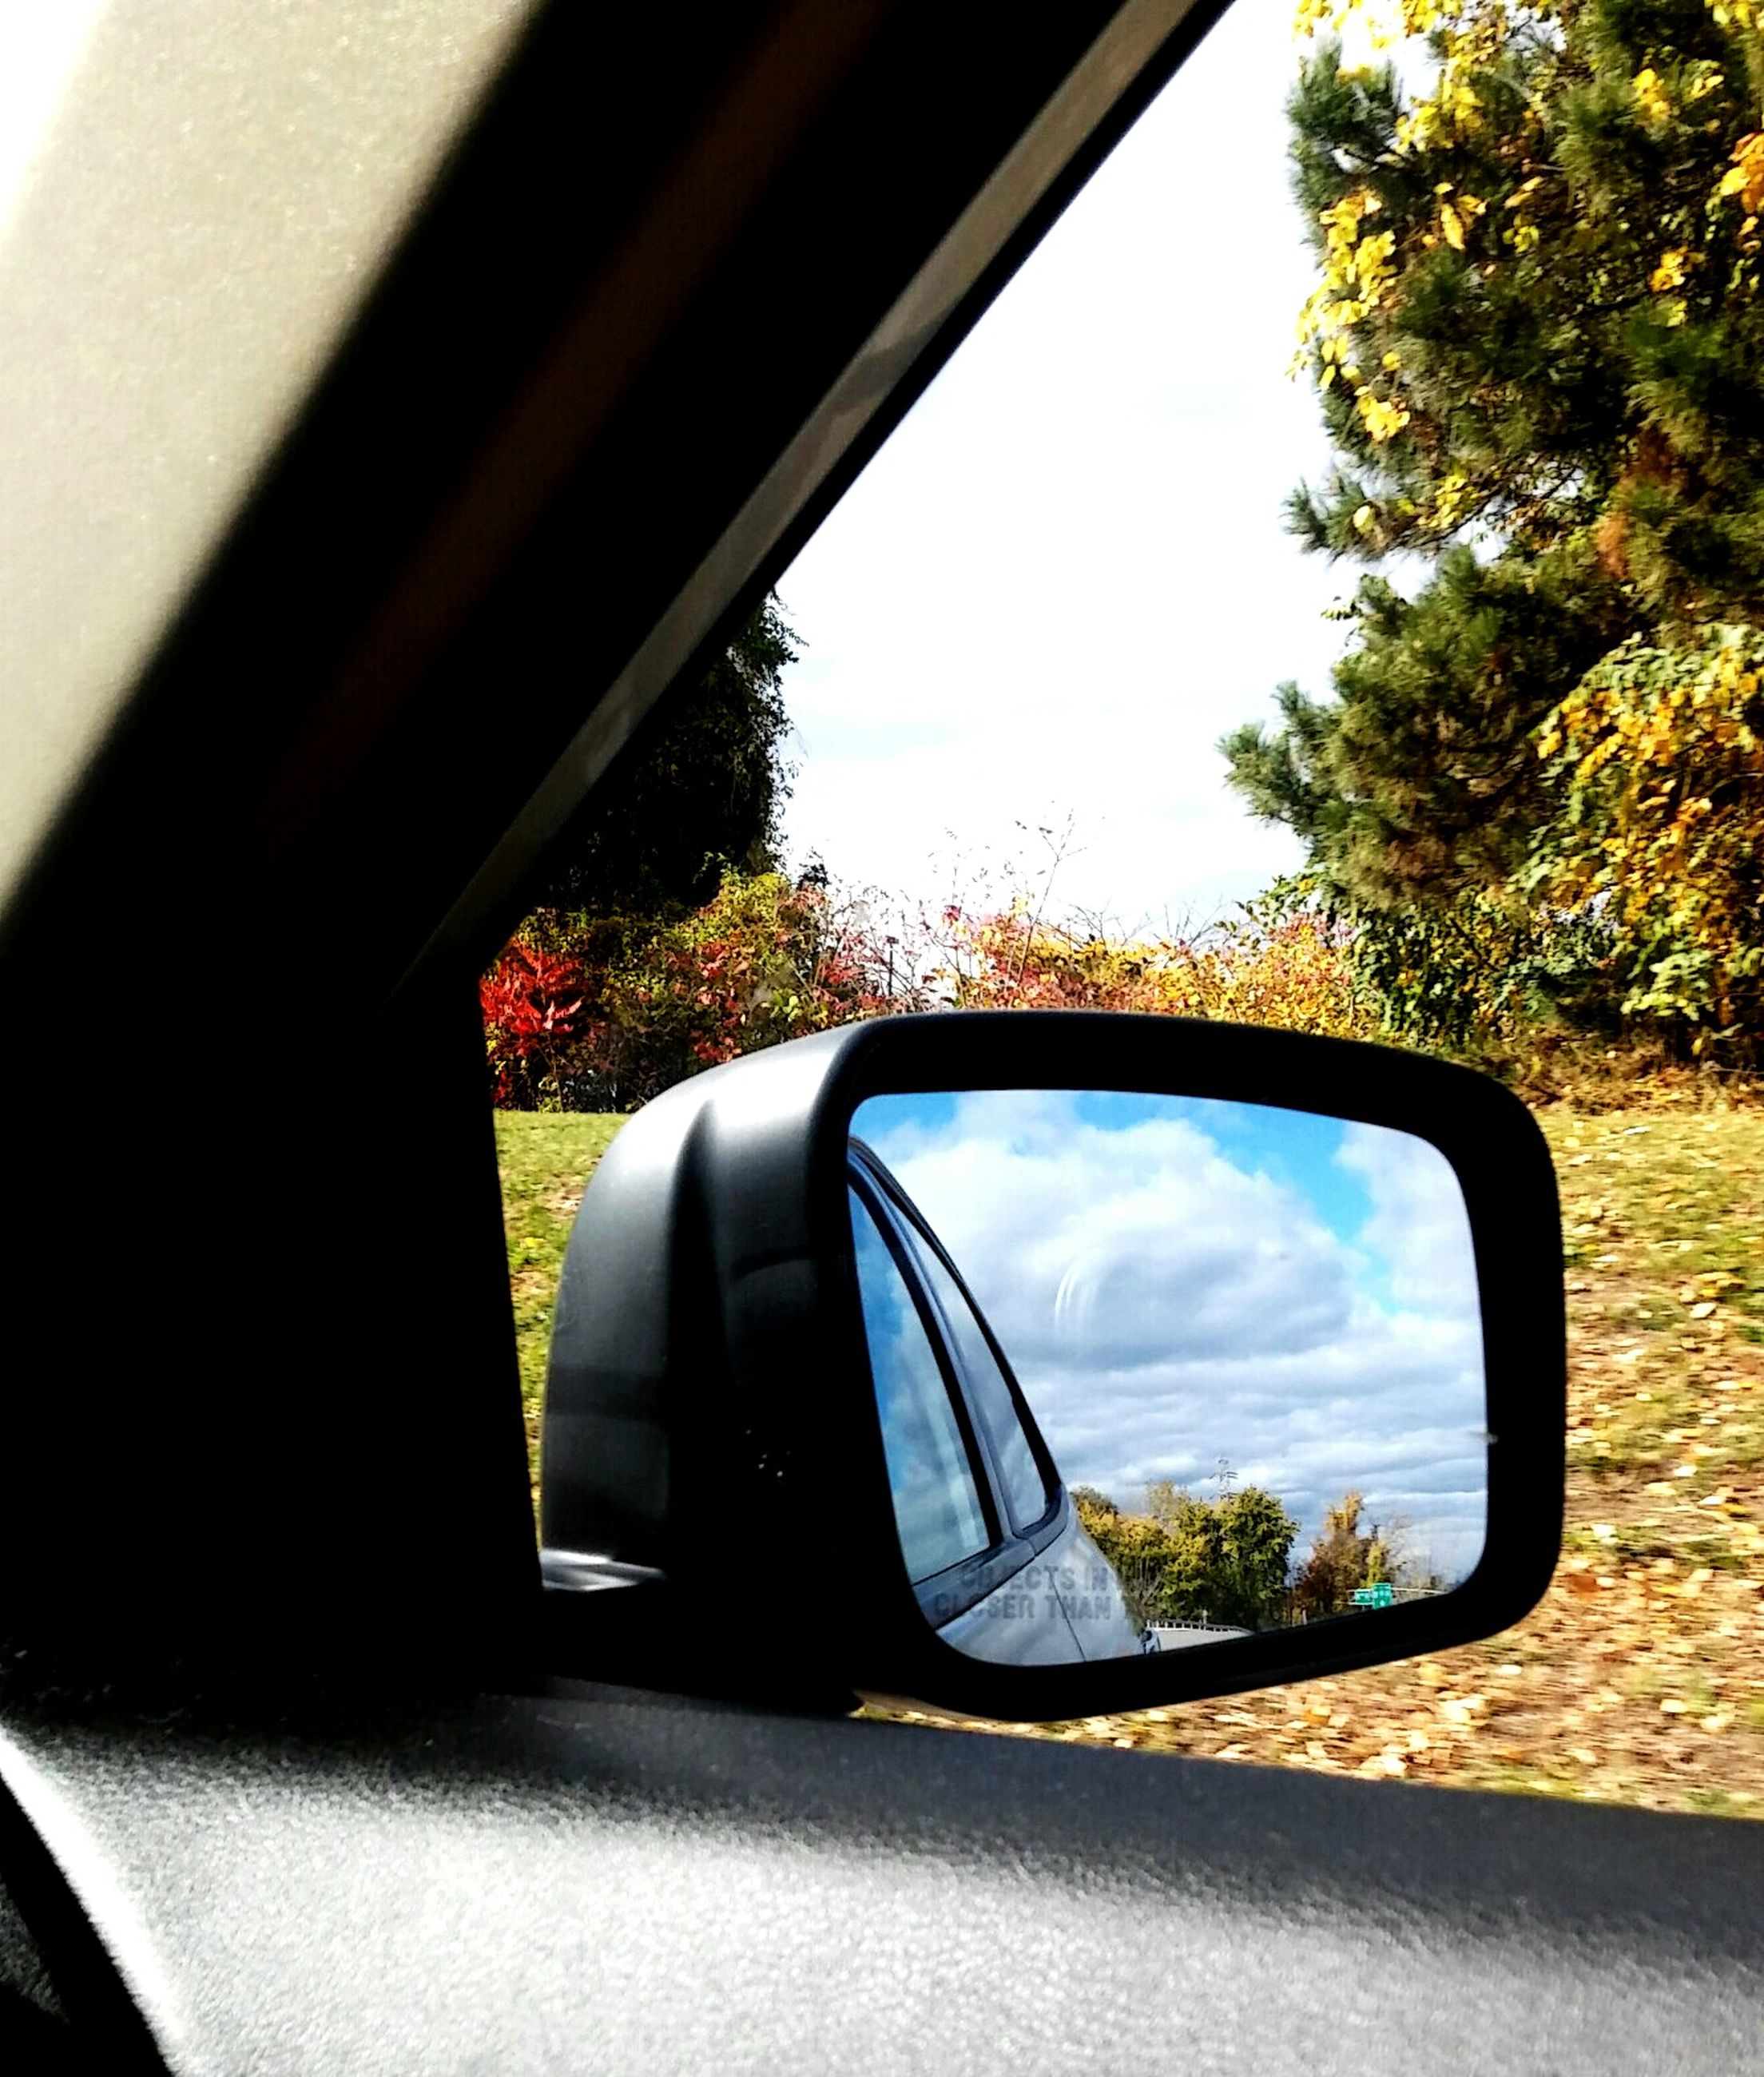 car, transportation, side-view mirror, mode of transport, land vehicle, car interior, vehicle interior, vehicle mirror, reflection, rear-view mirror, tree, day, no people, the way forward, road, close-up, outdoors, sky, nature